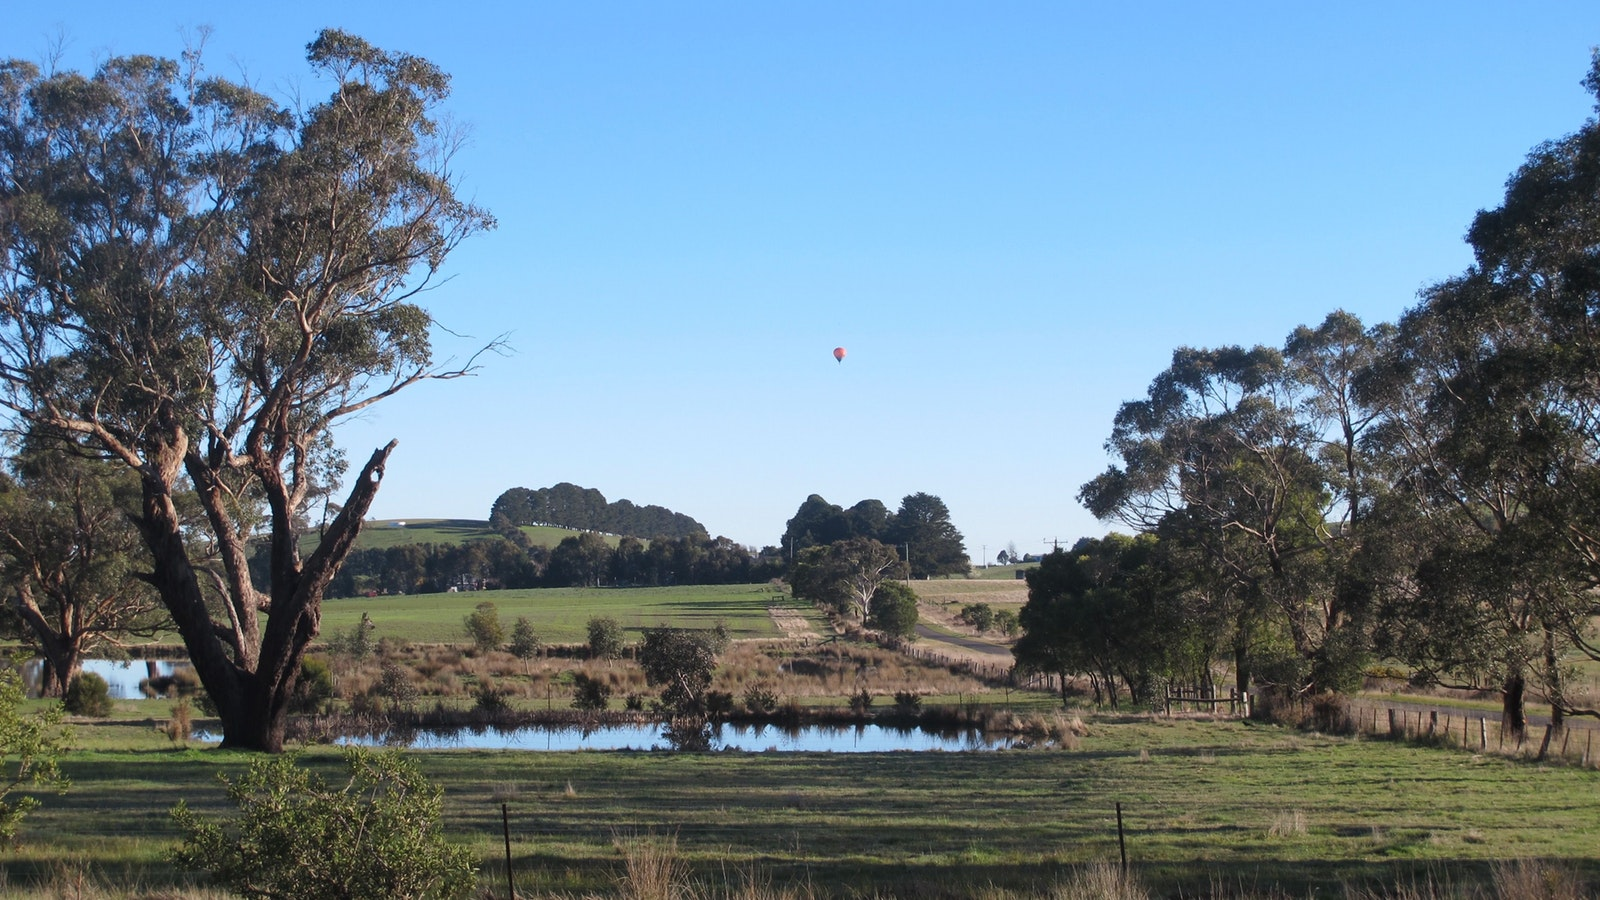 Beautiful countryside and Picture This Ballooning hot air balloon at Daylesford